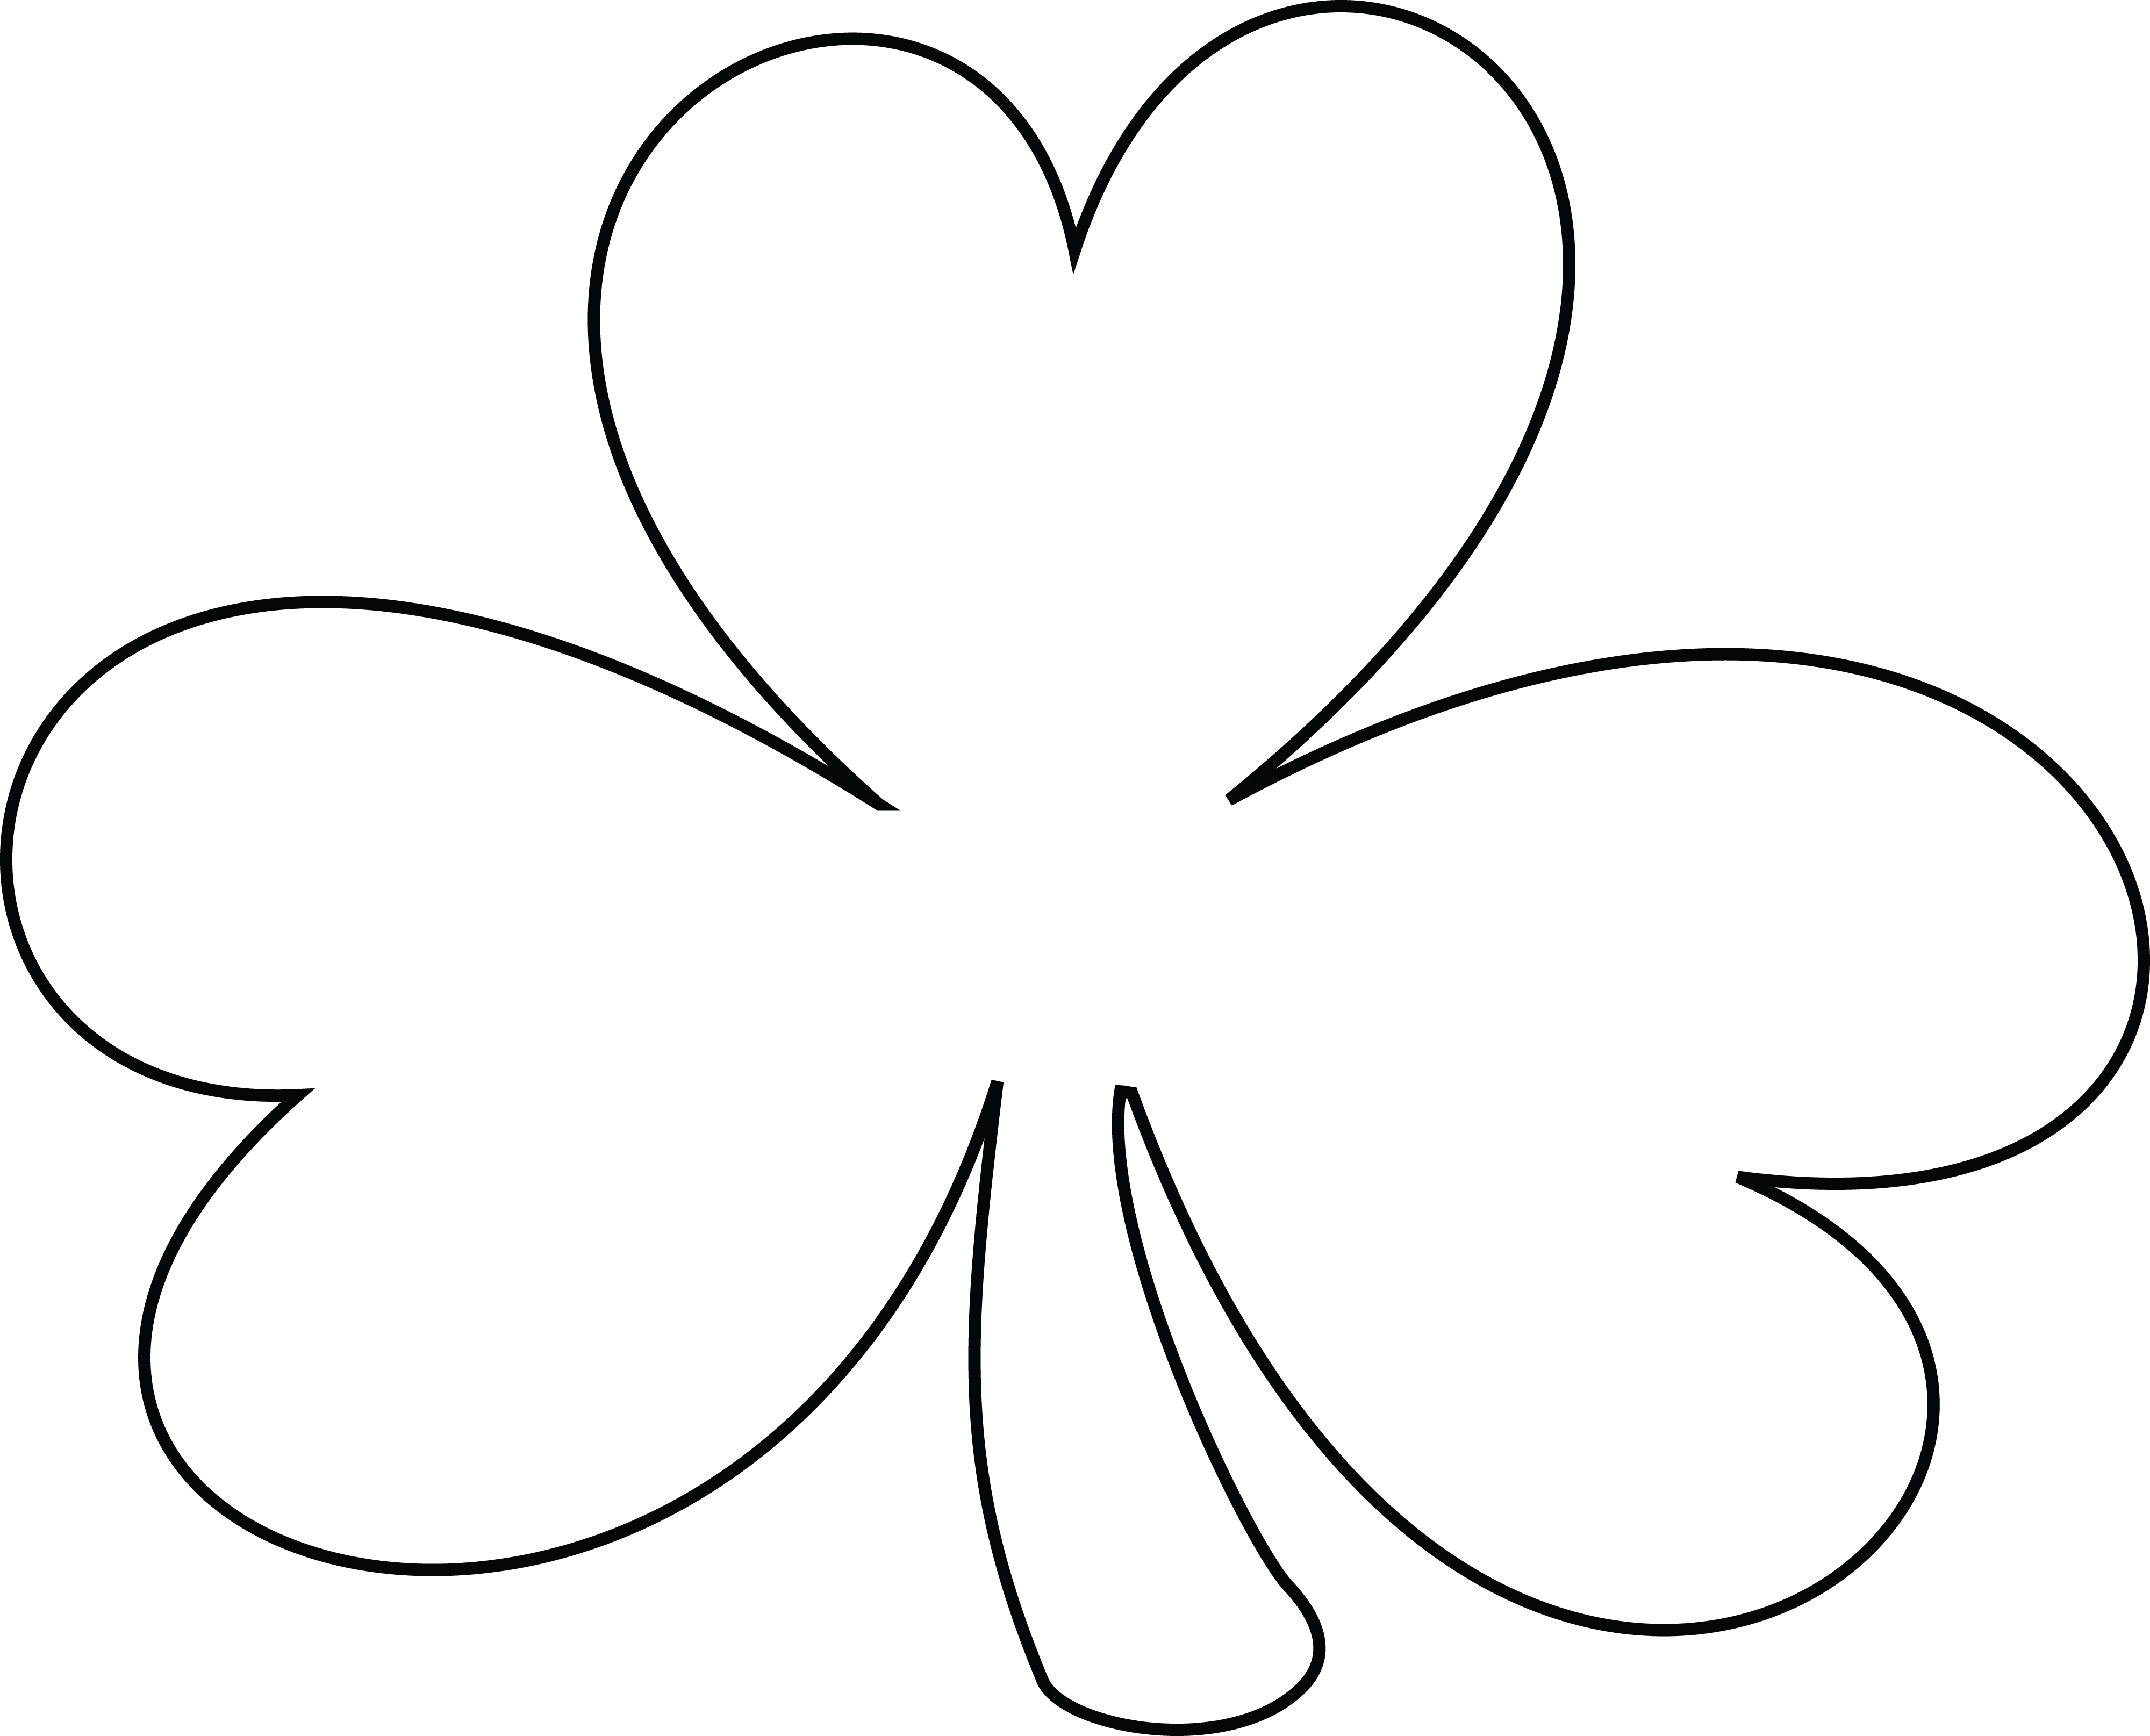 Crown clover clipart black and white png black and white stock 28+ Collection of Clover Clipart Black And White | High quality ... png black and white stock